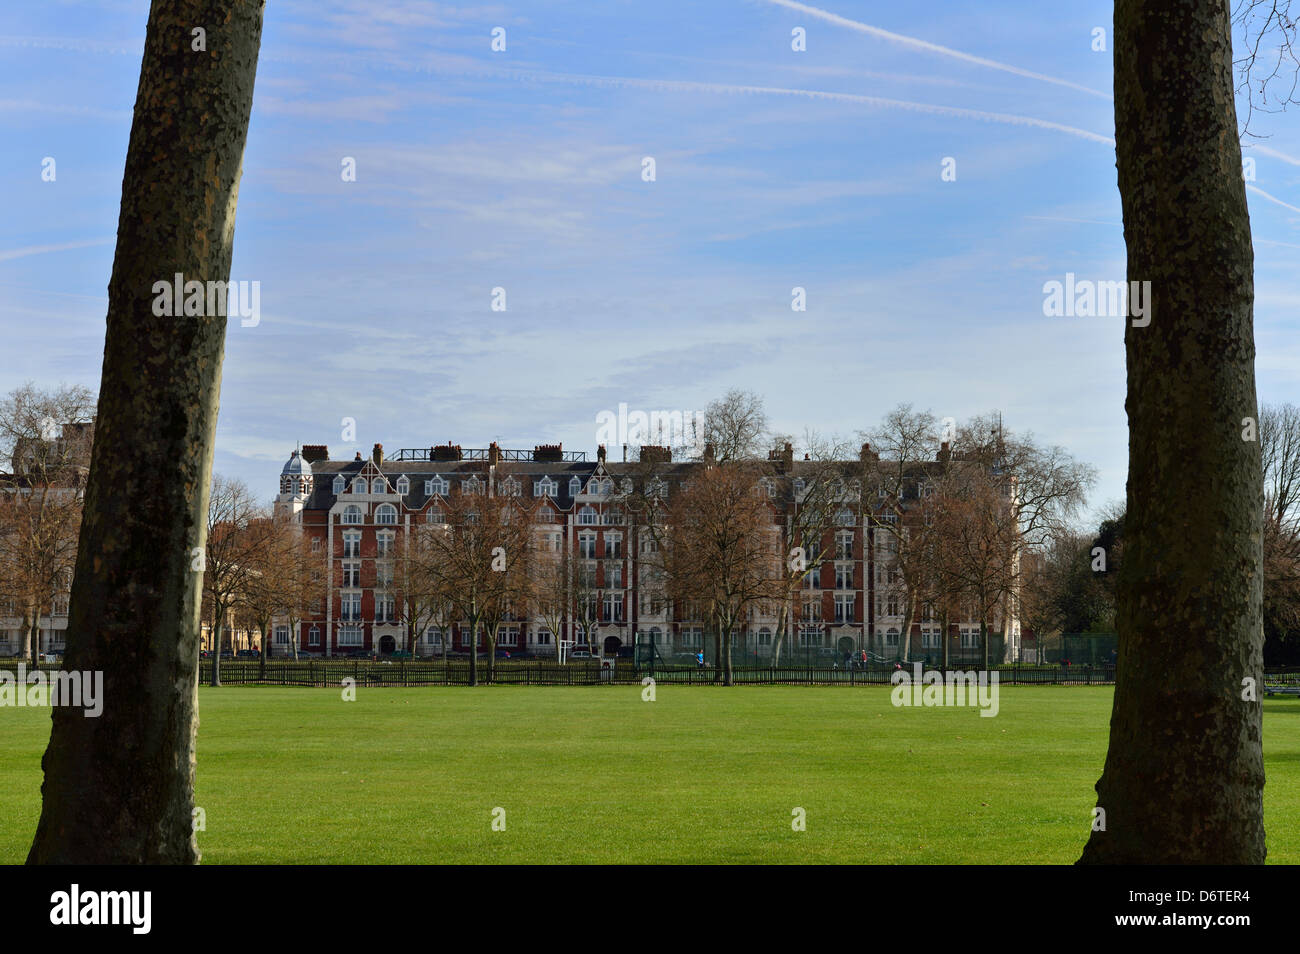 Burton's Court, Royal Hospital Road, Chelsea, London, United Kingdom - Stock Image